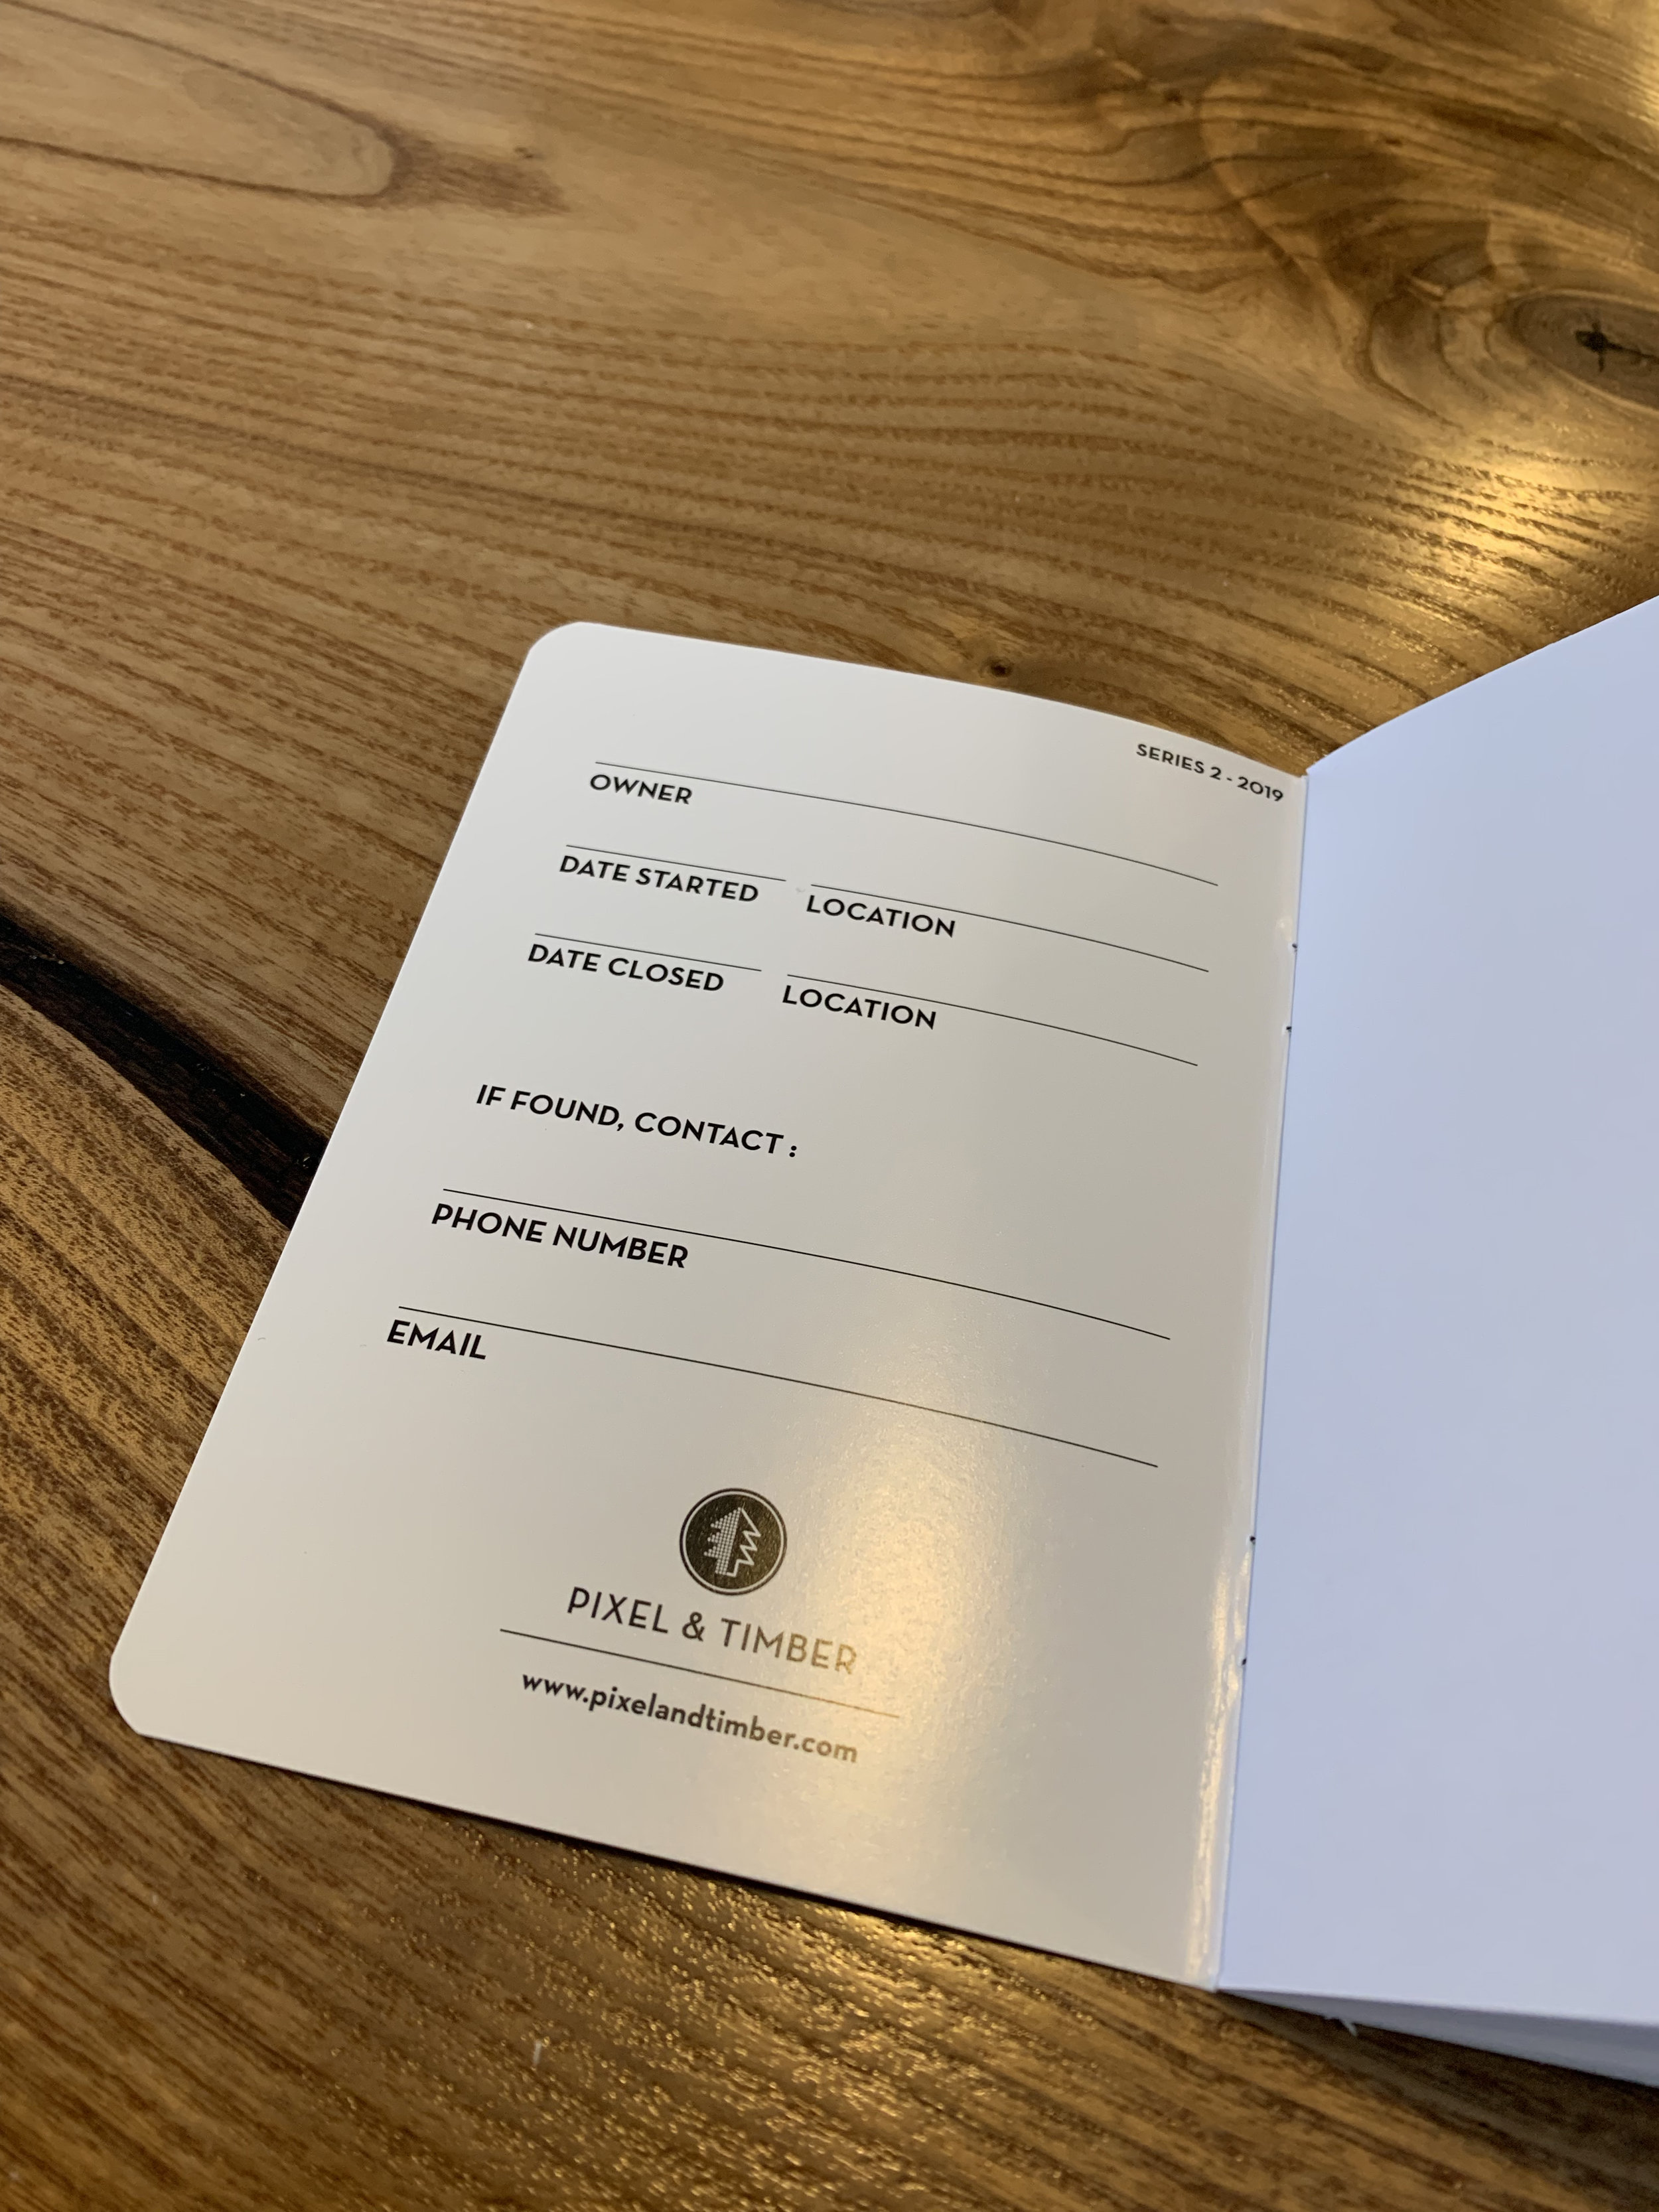 Inside the front cover, you'll find a space to jot some relevant owner info.